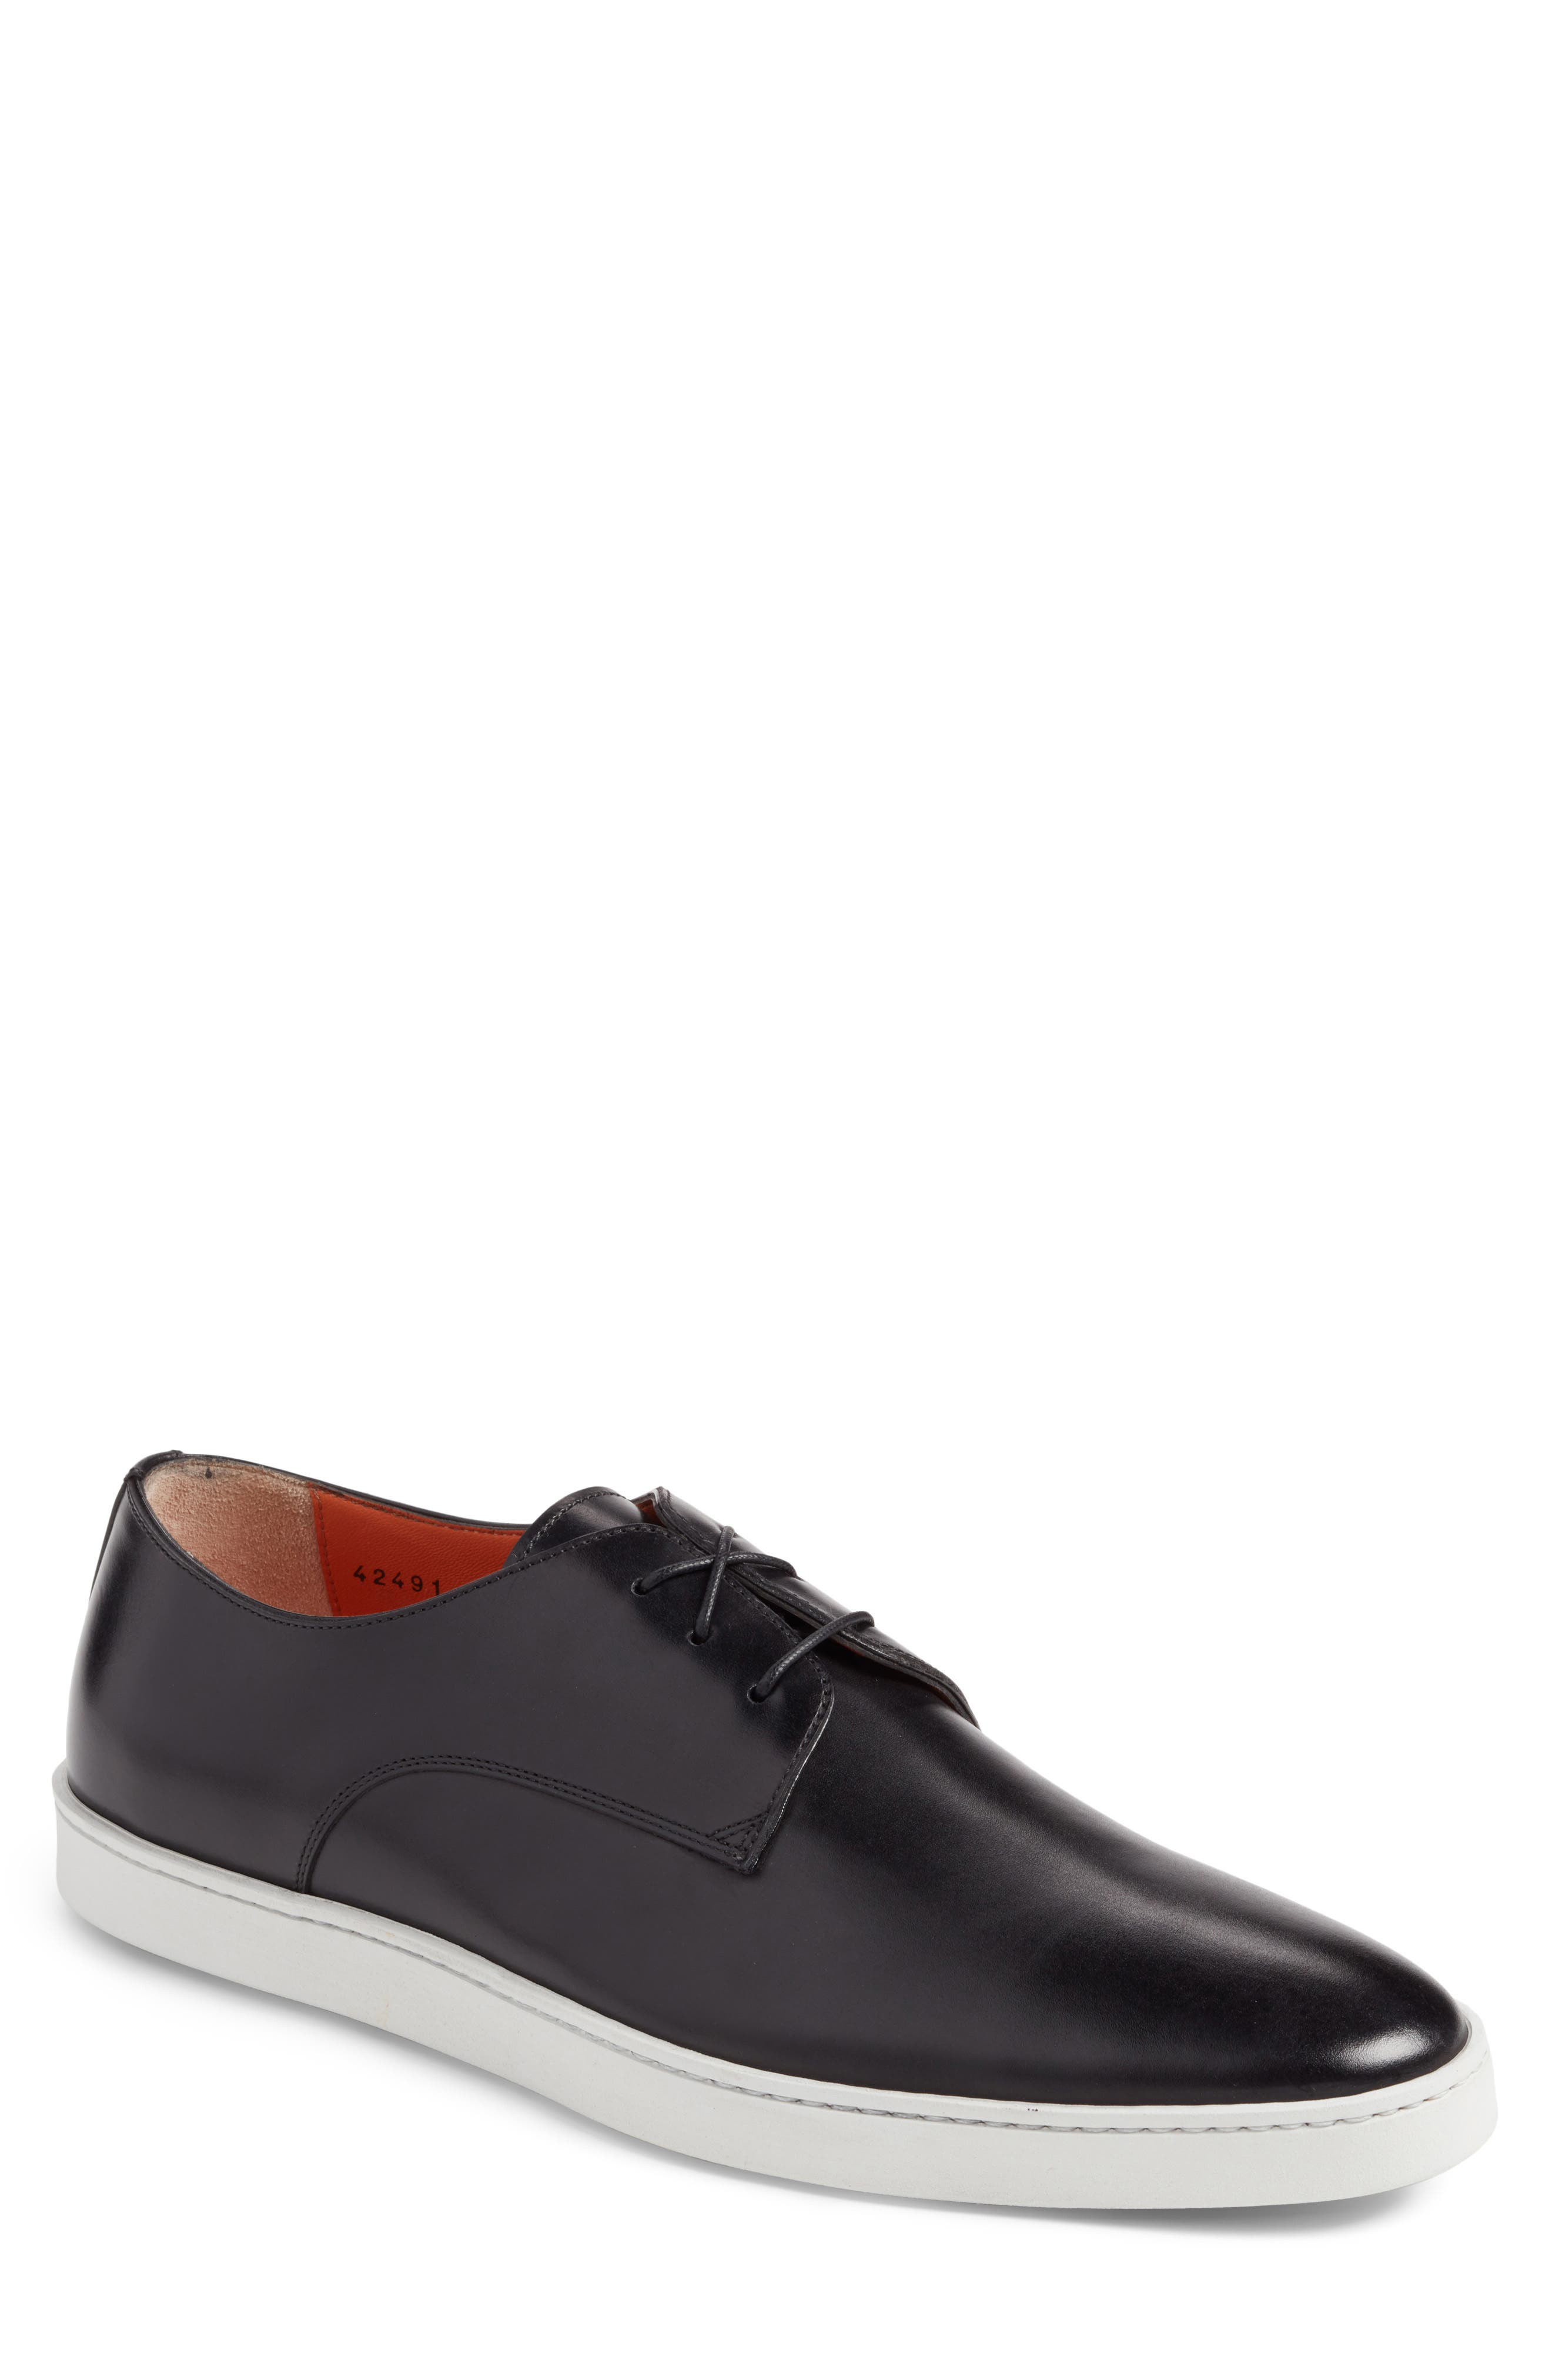 Alternate Image 1 Selected - Santoni Doyle Sneaker (Men)